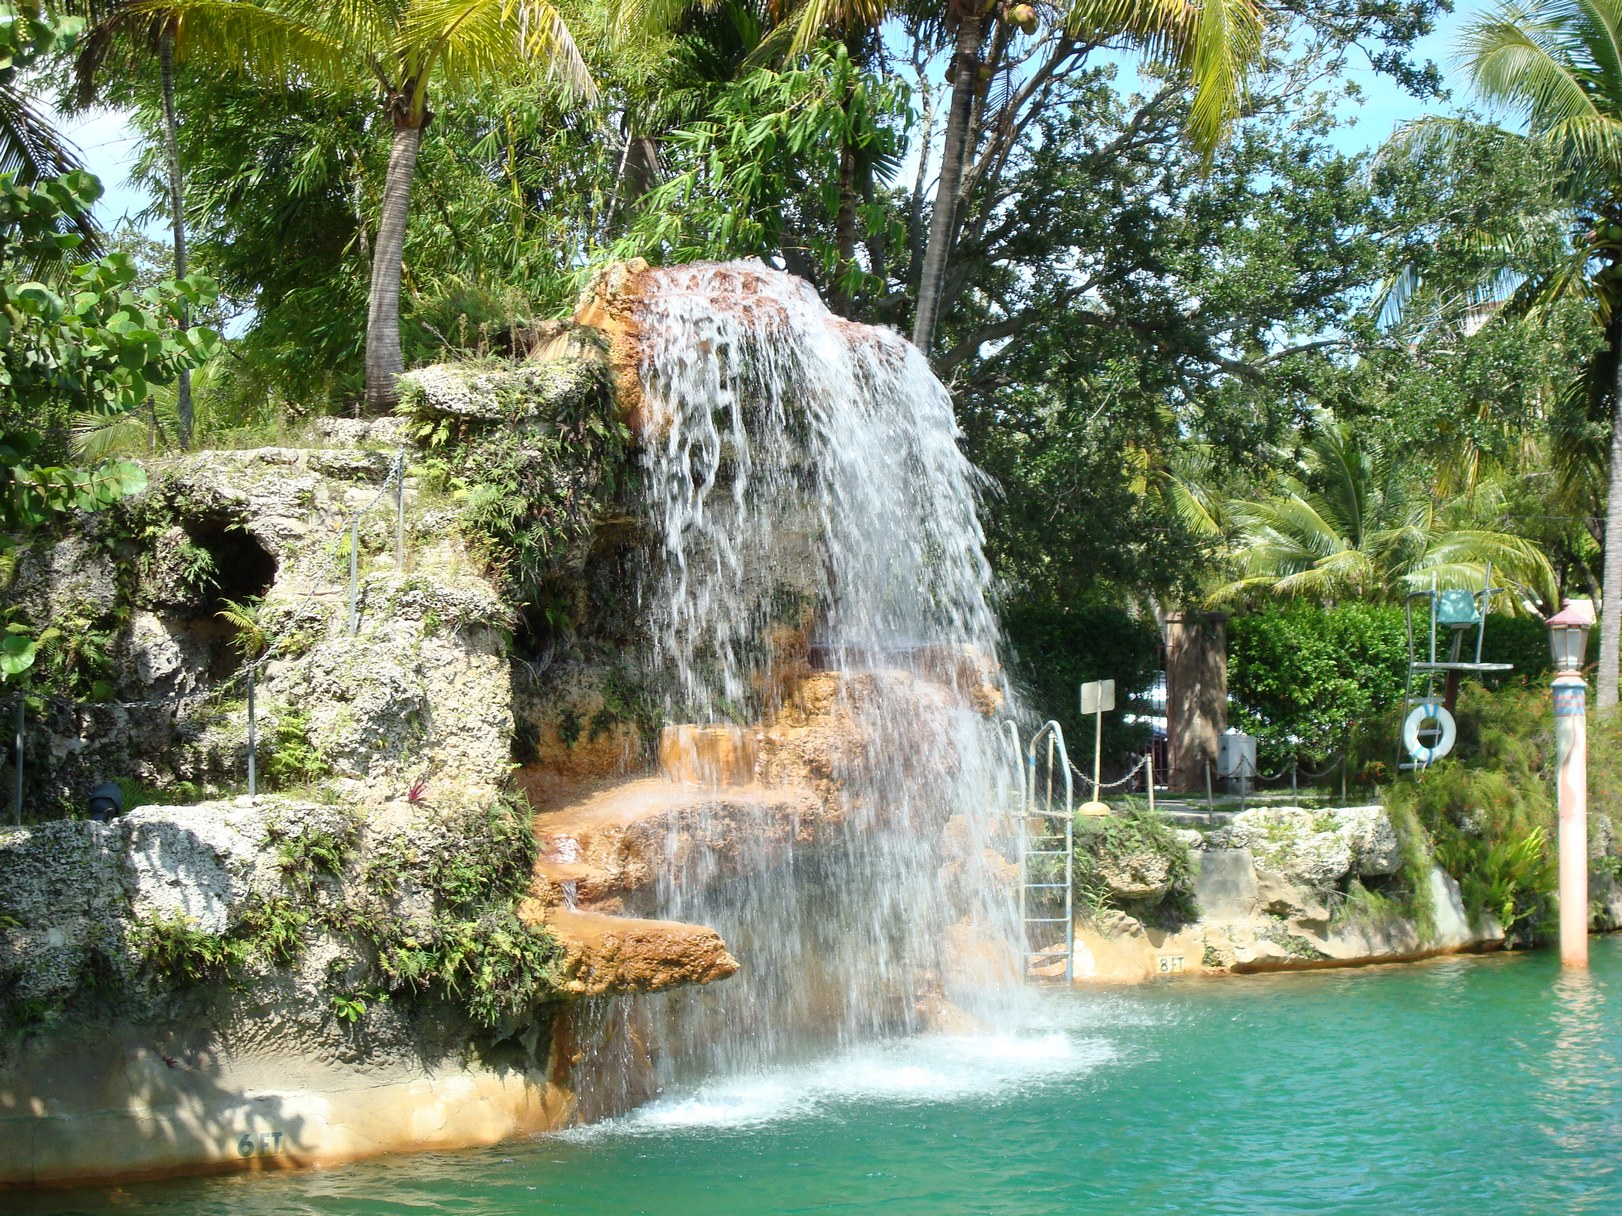 Venetian Pool, Waterfall, Miami